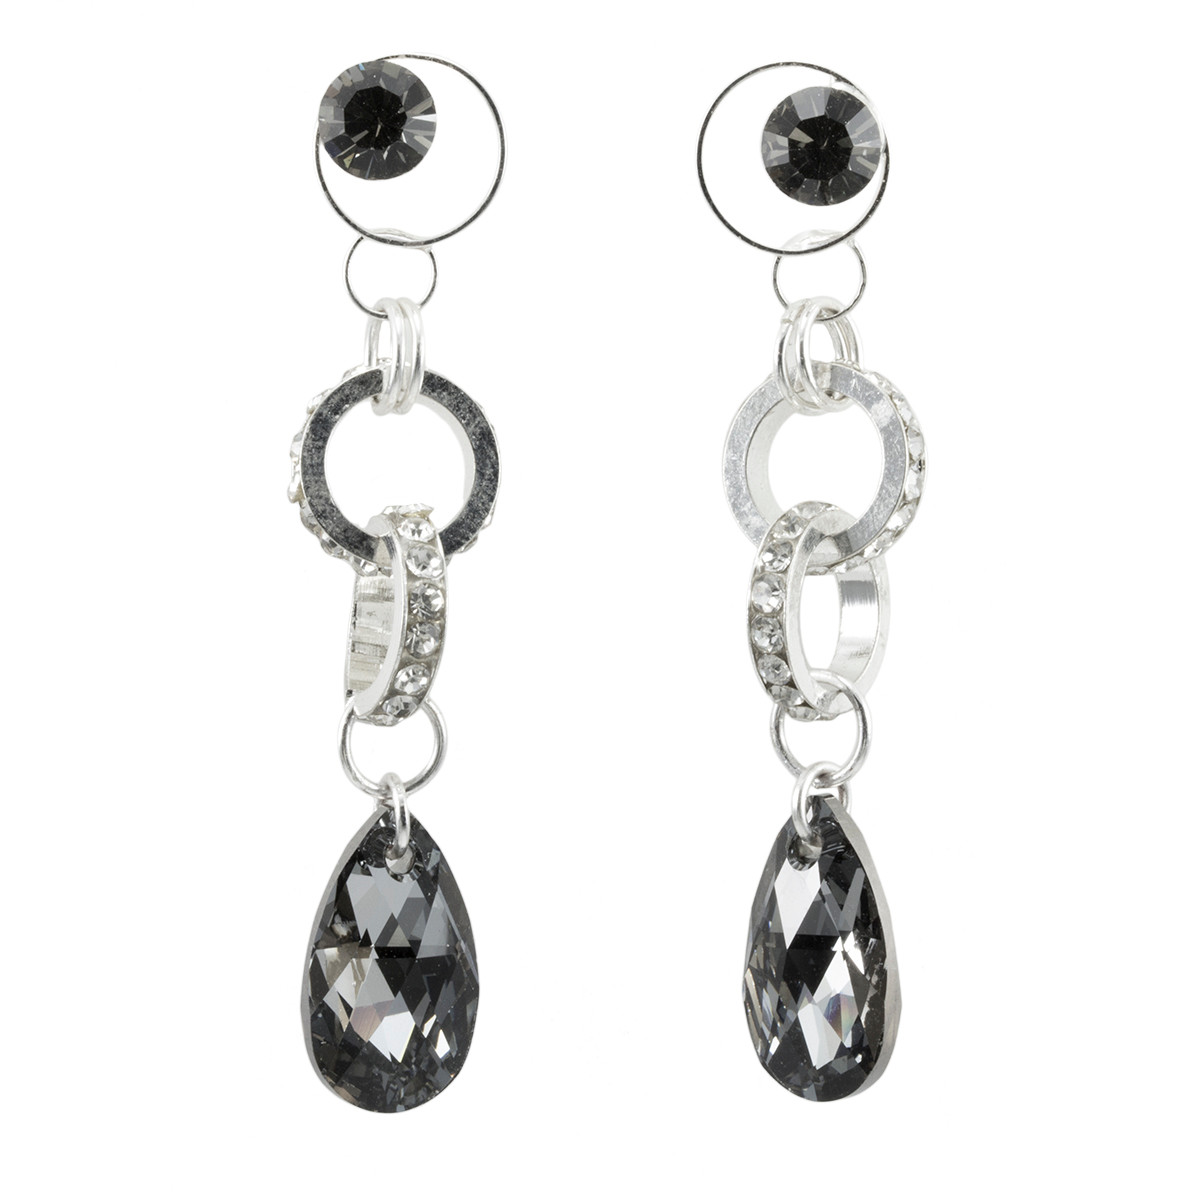 Anat Collection Earrings Silver Storm Shabby Chic